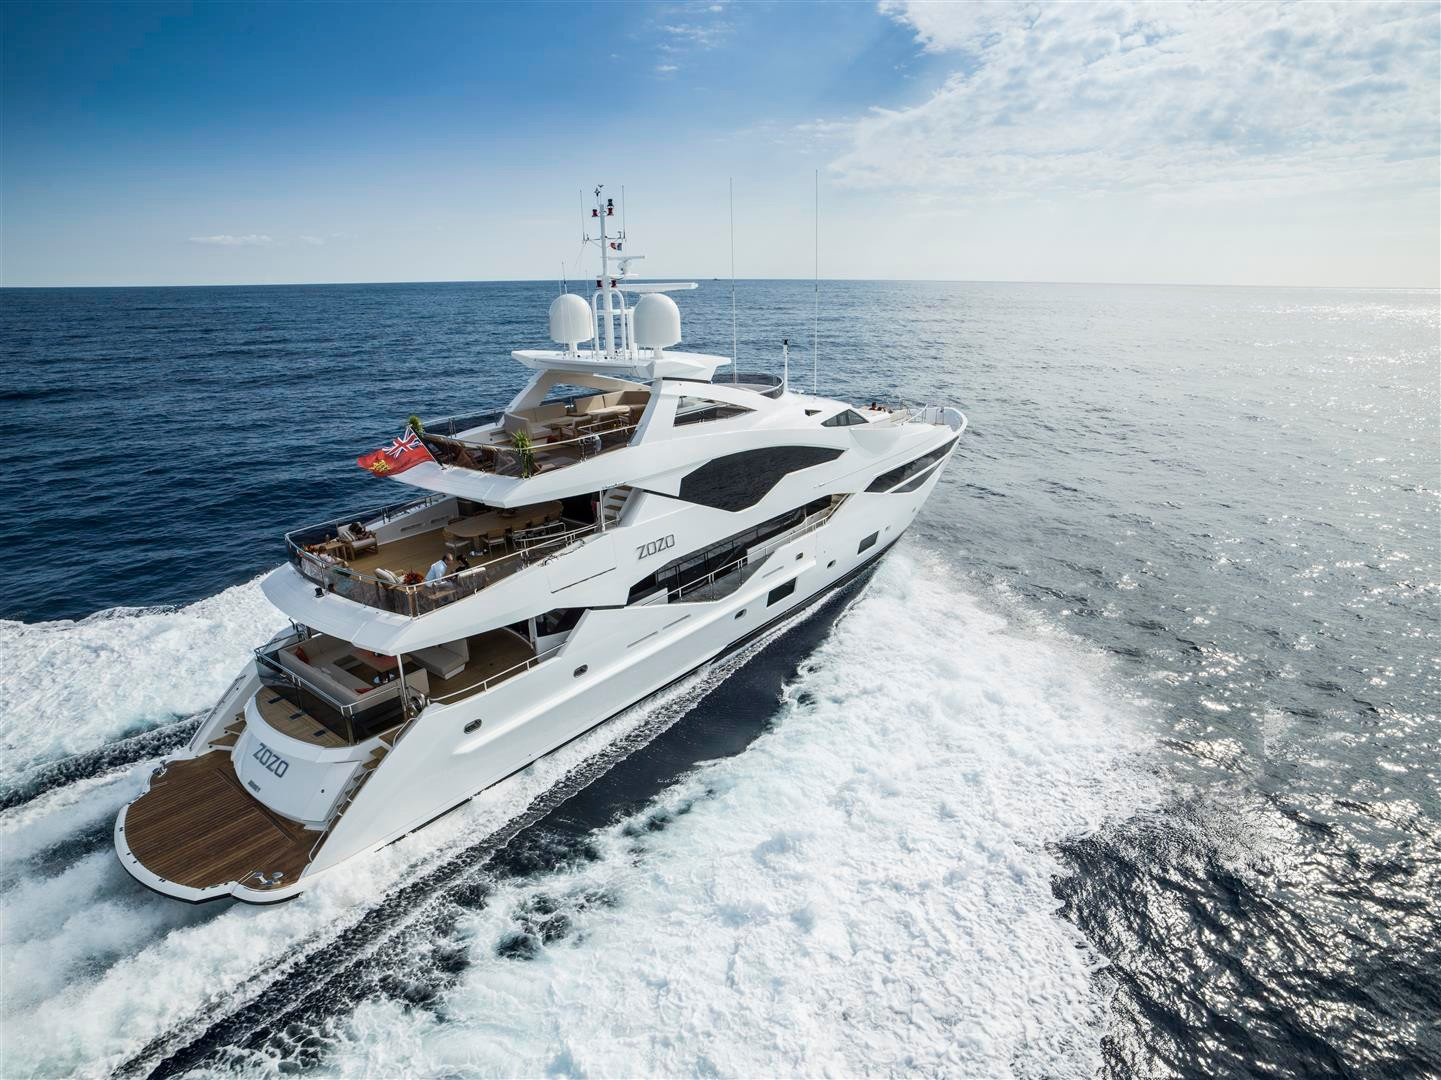 Image courtesy of Sunseeker Int